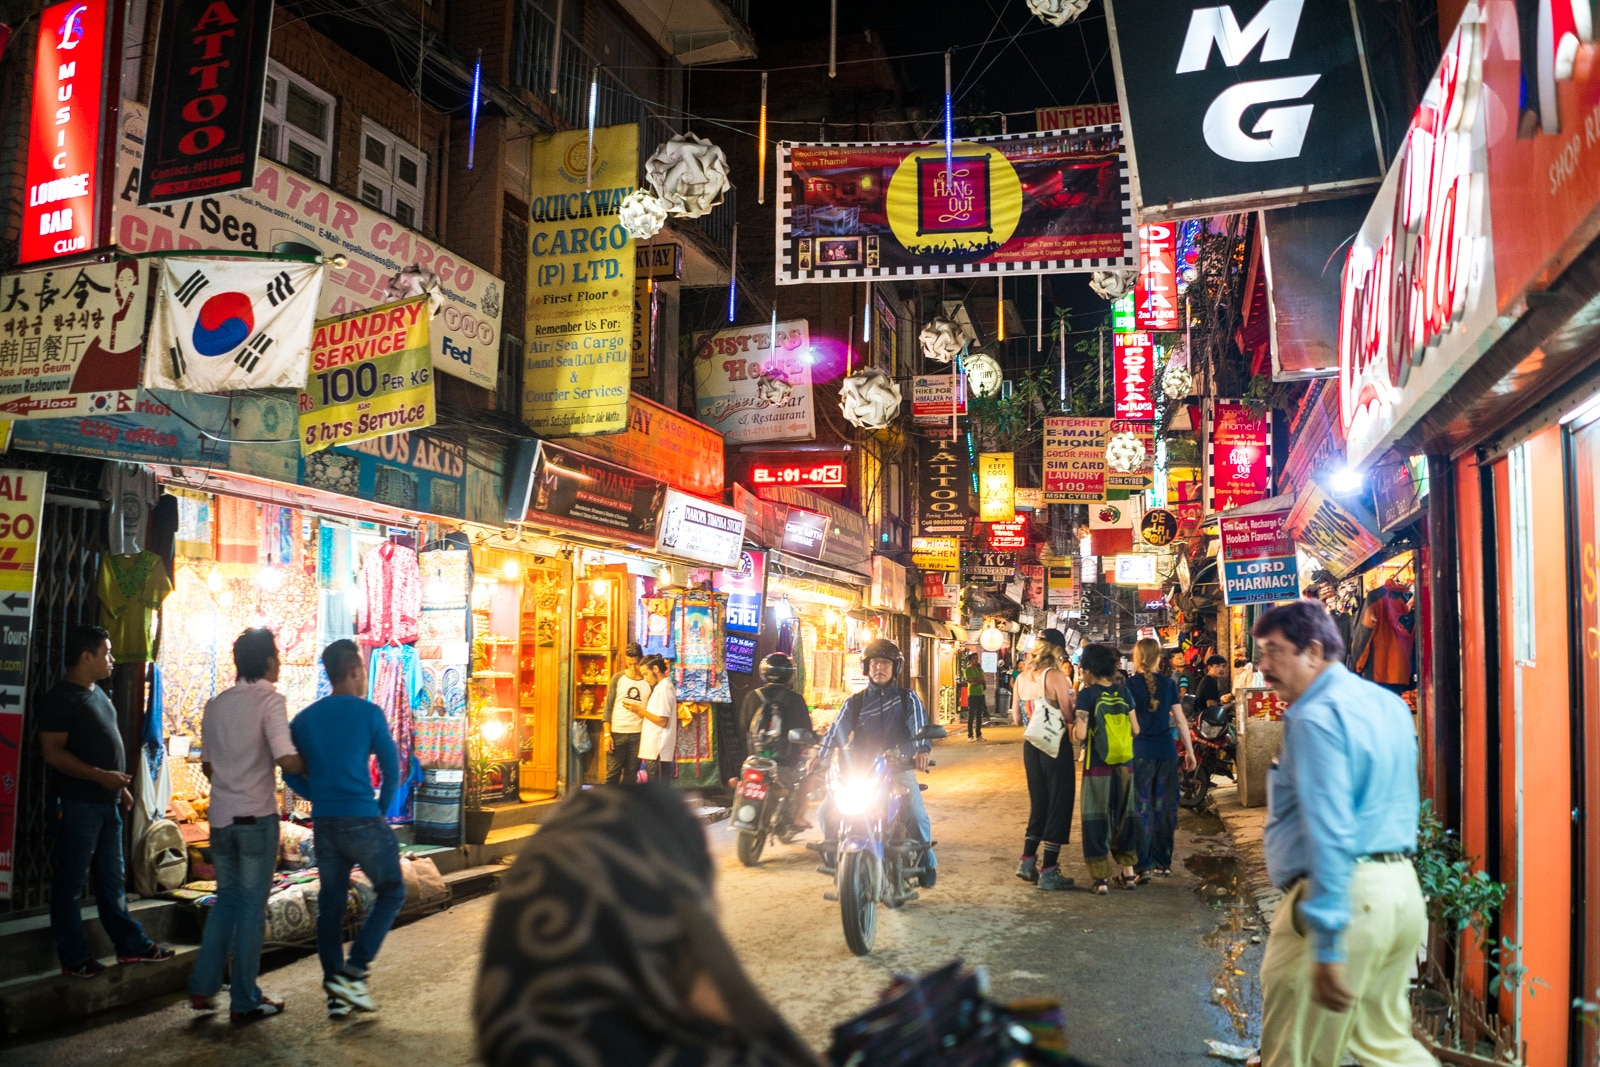 Best wifi in Thamel, Kathmandu for digital nomads - Thamel at night - Lost With Purpose travel blog